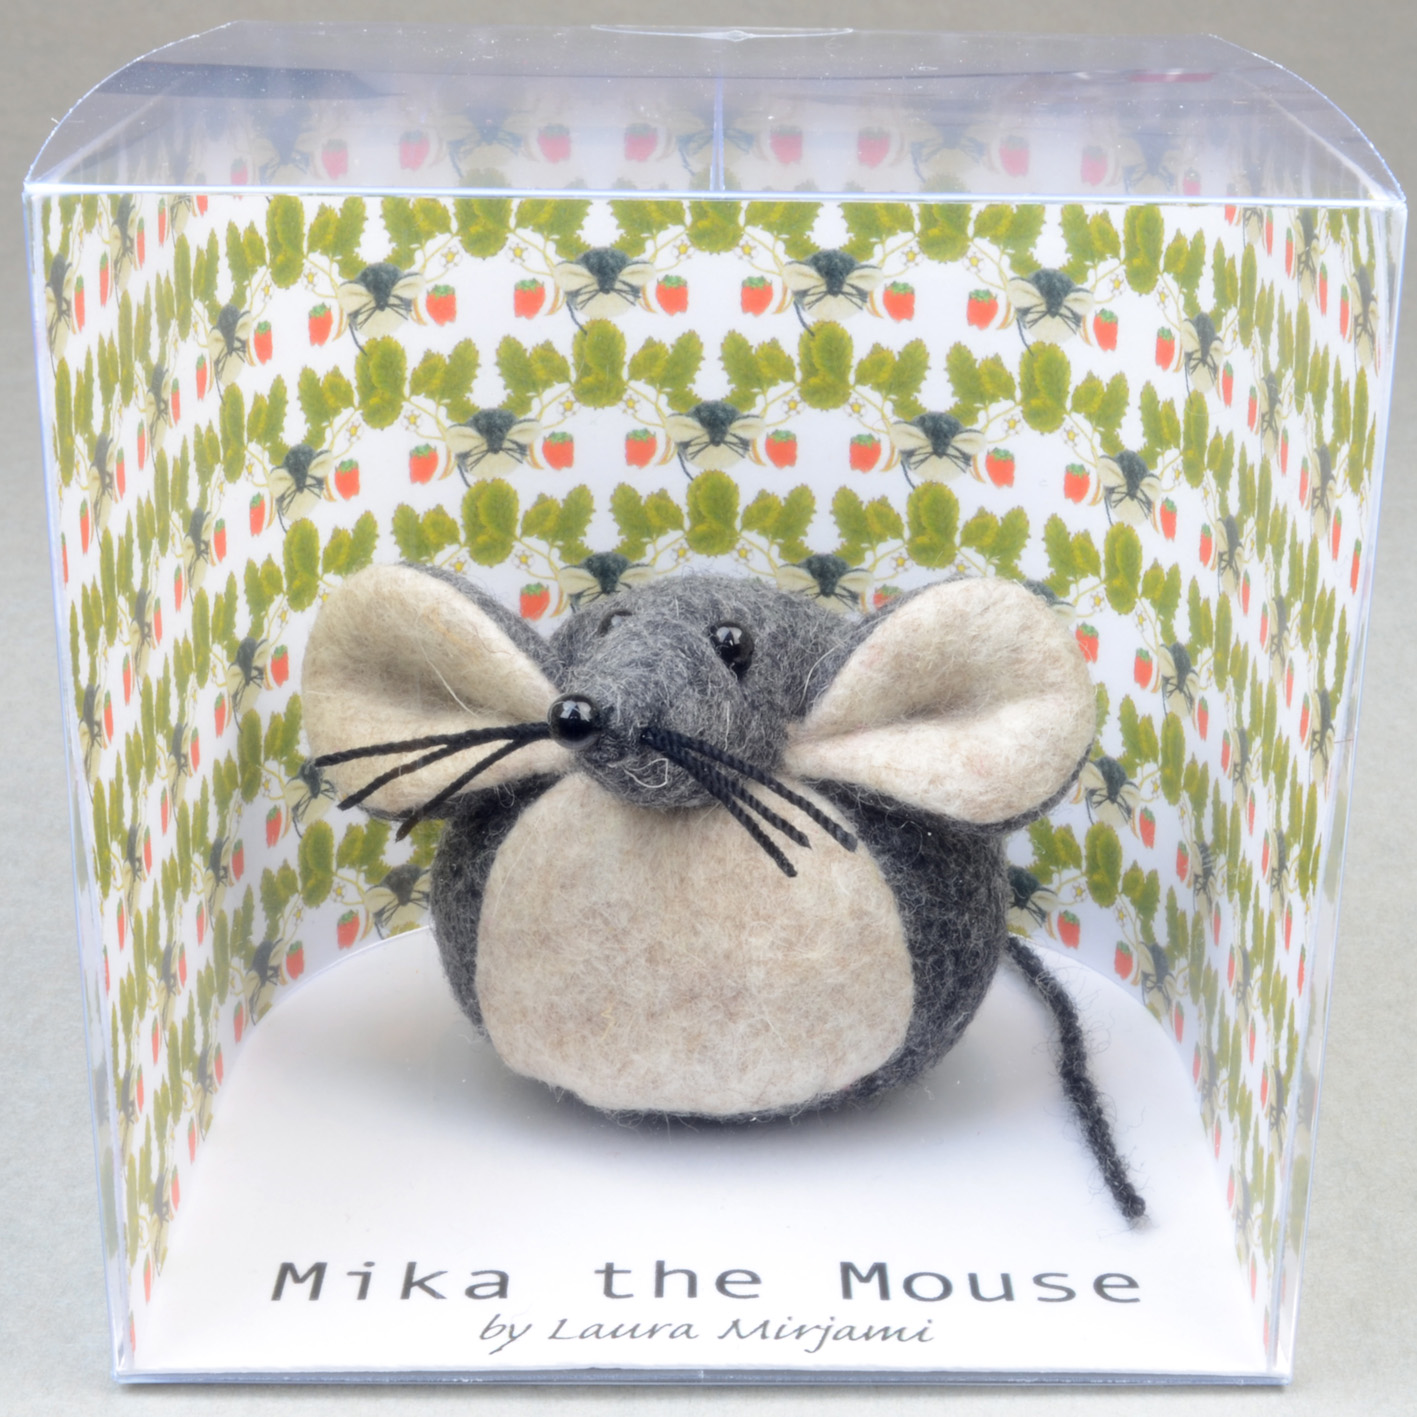 Handmade Mika the Mouse paperweight in a new packaging box.